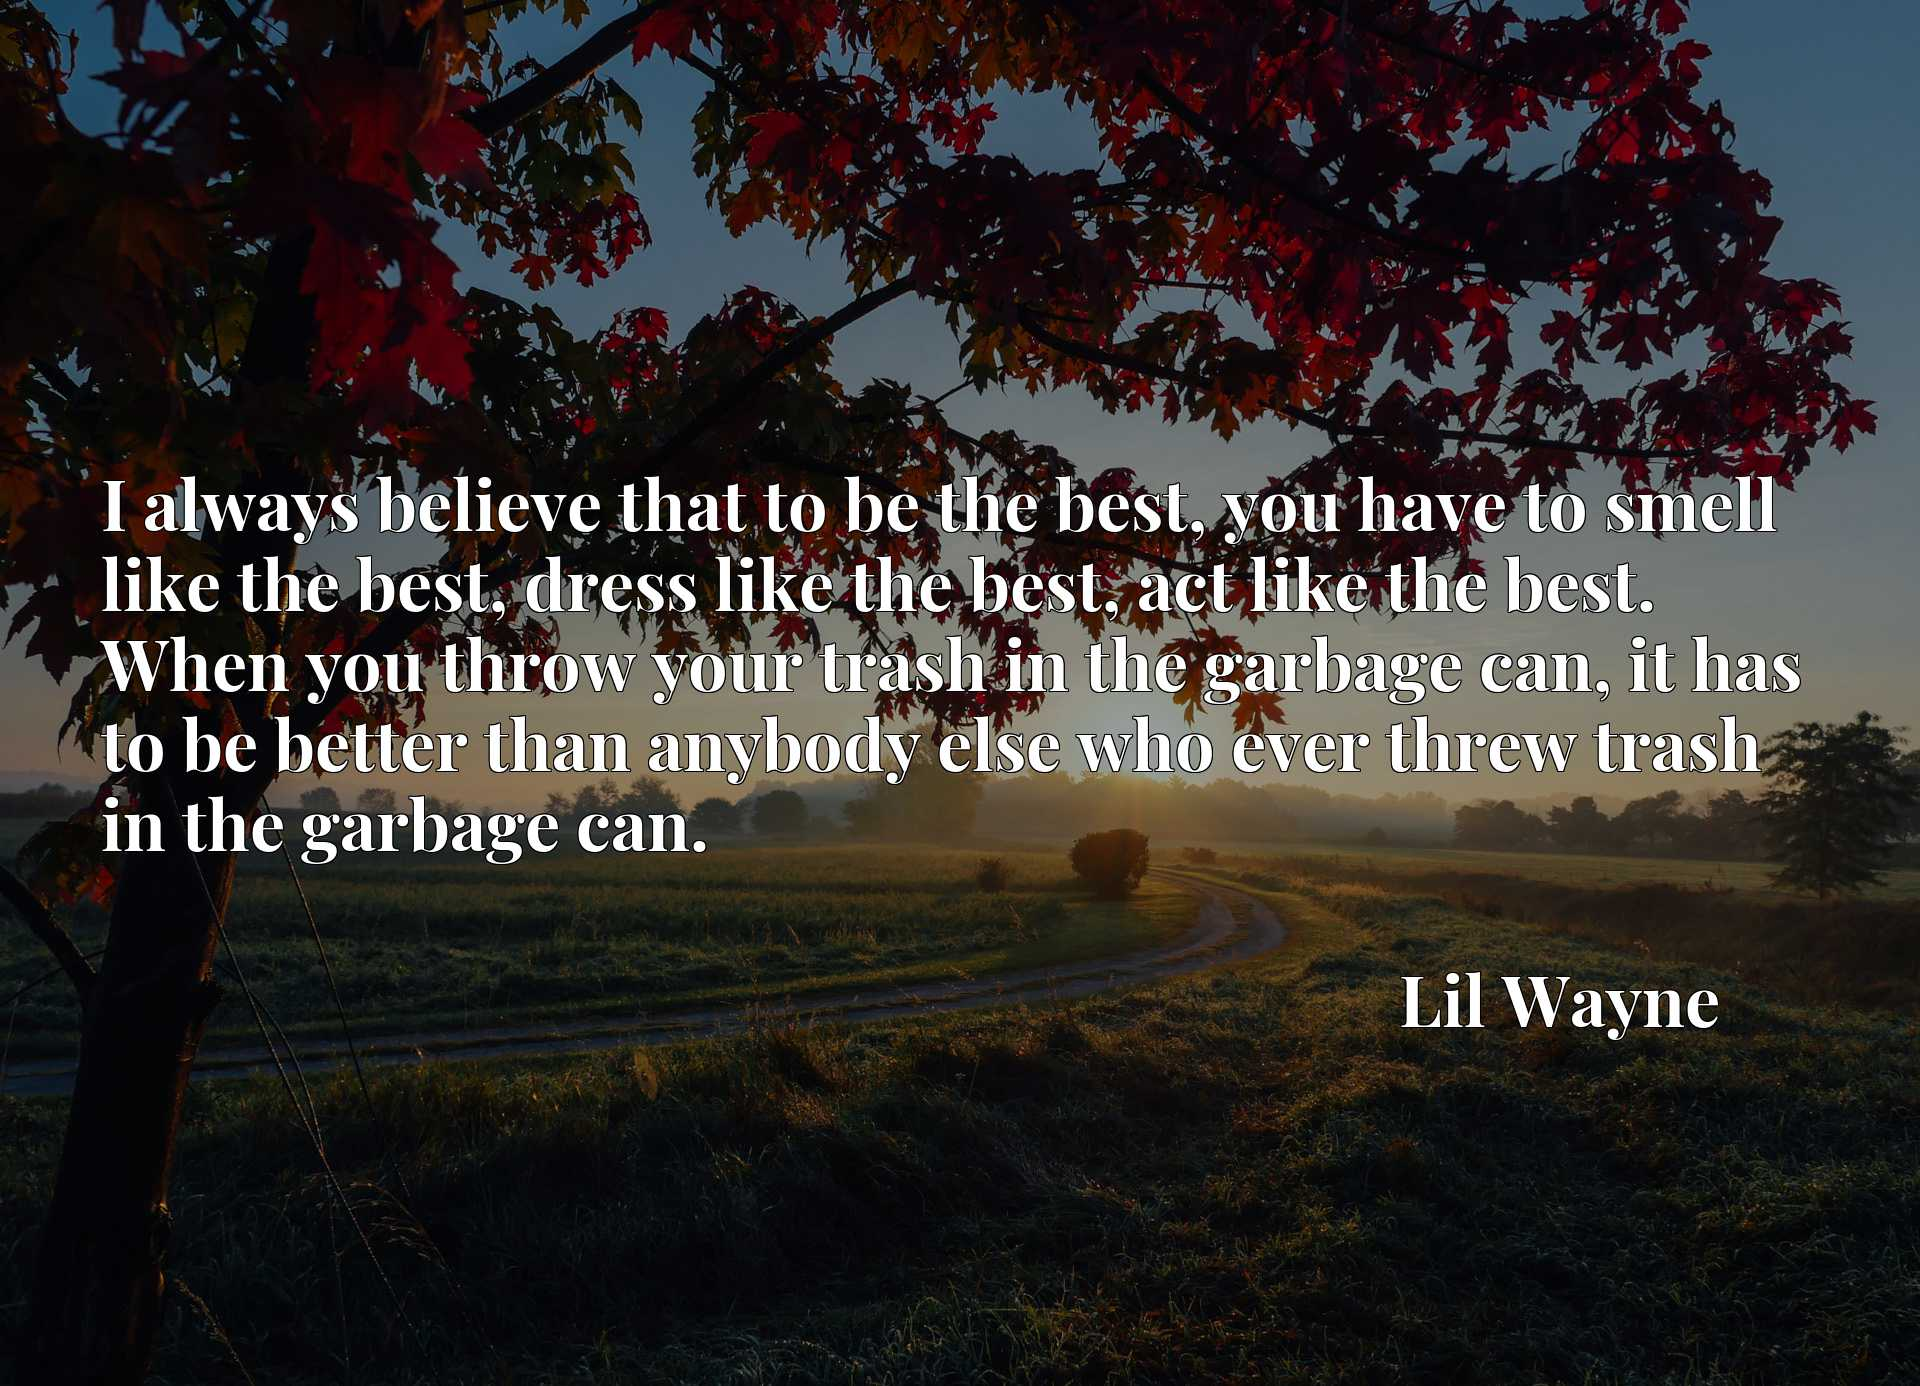 I always believe that to be the best, you have to smell like the best, dress like the best, act like the best. When you throw your trash in the garbage can, it has to be better than anybody else who ever threw trash in the garbage can.